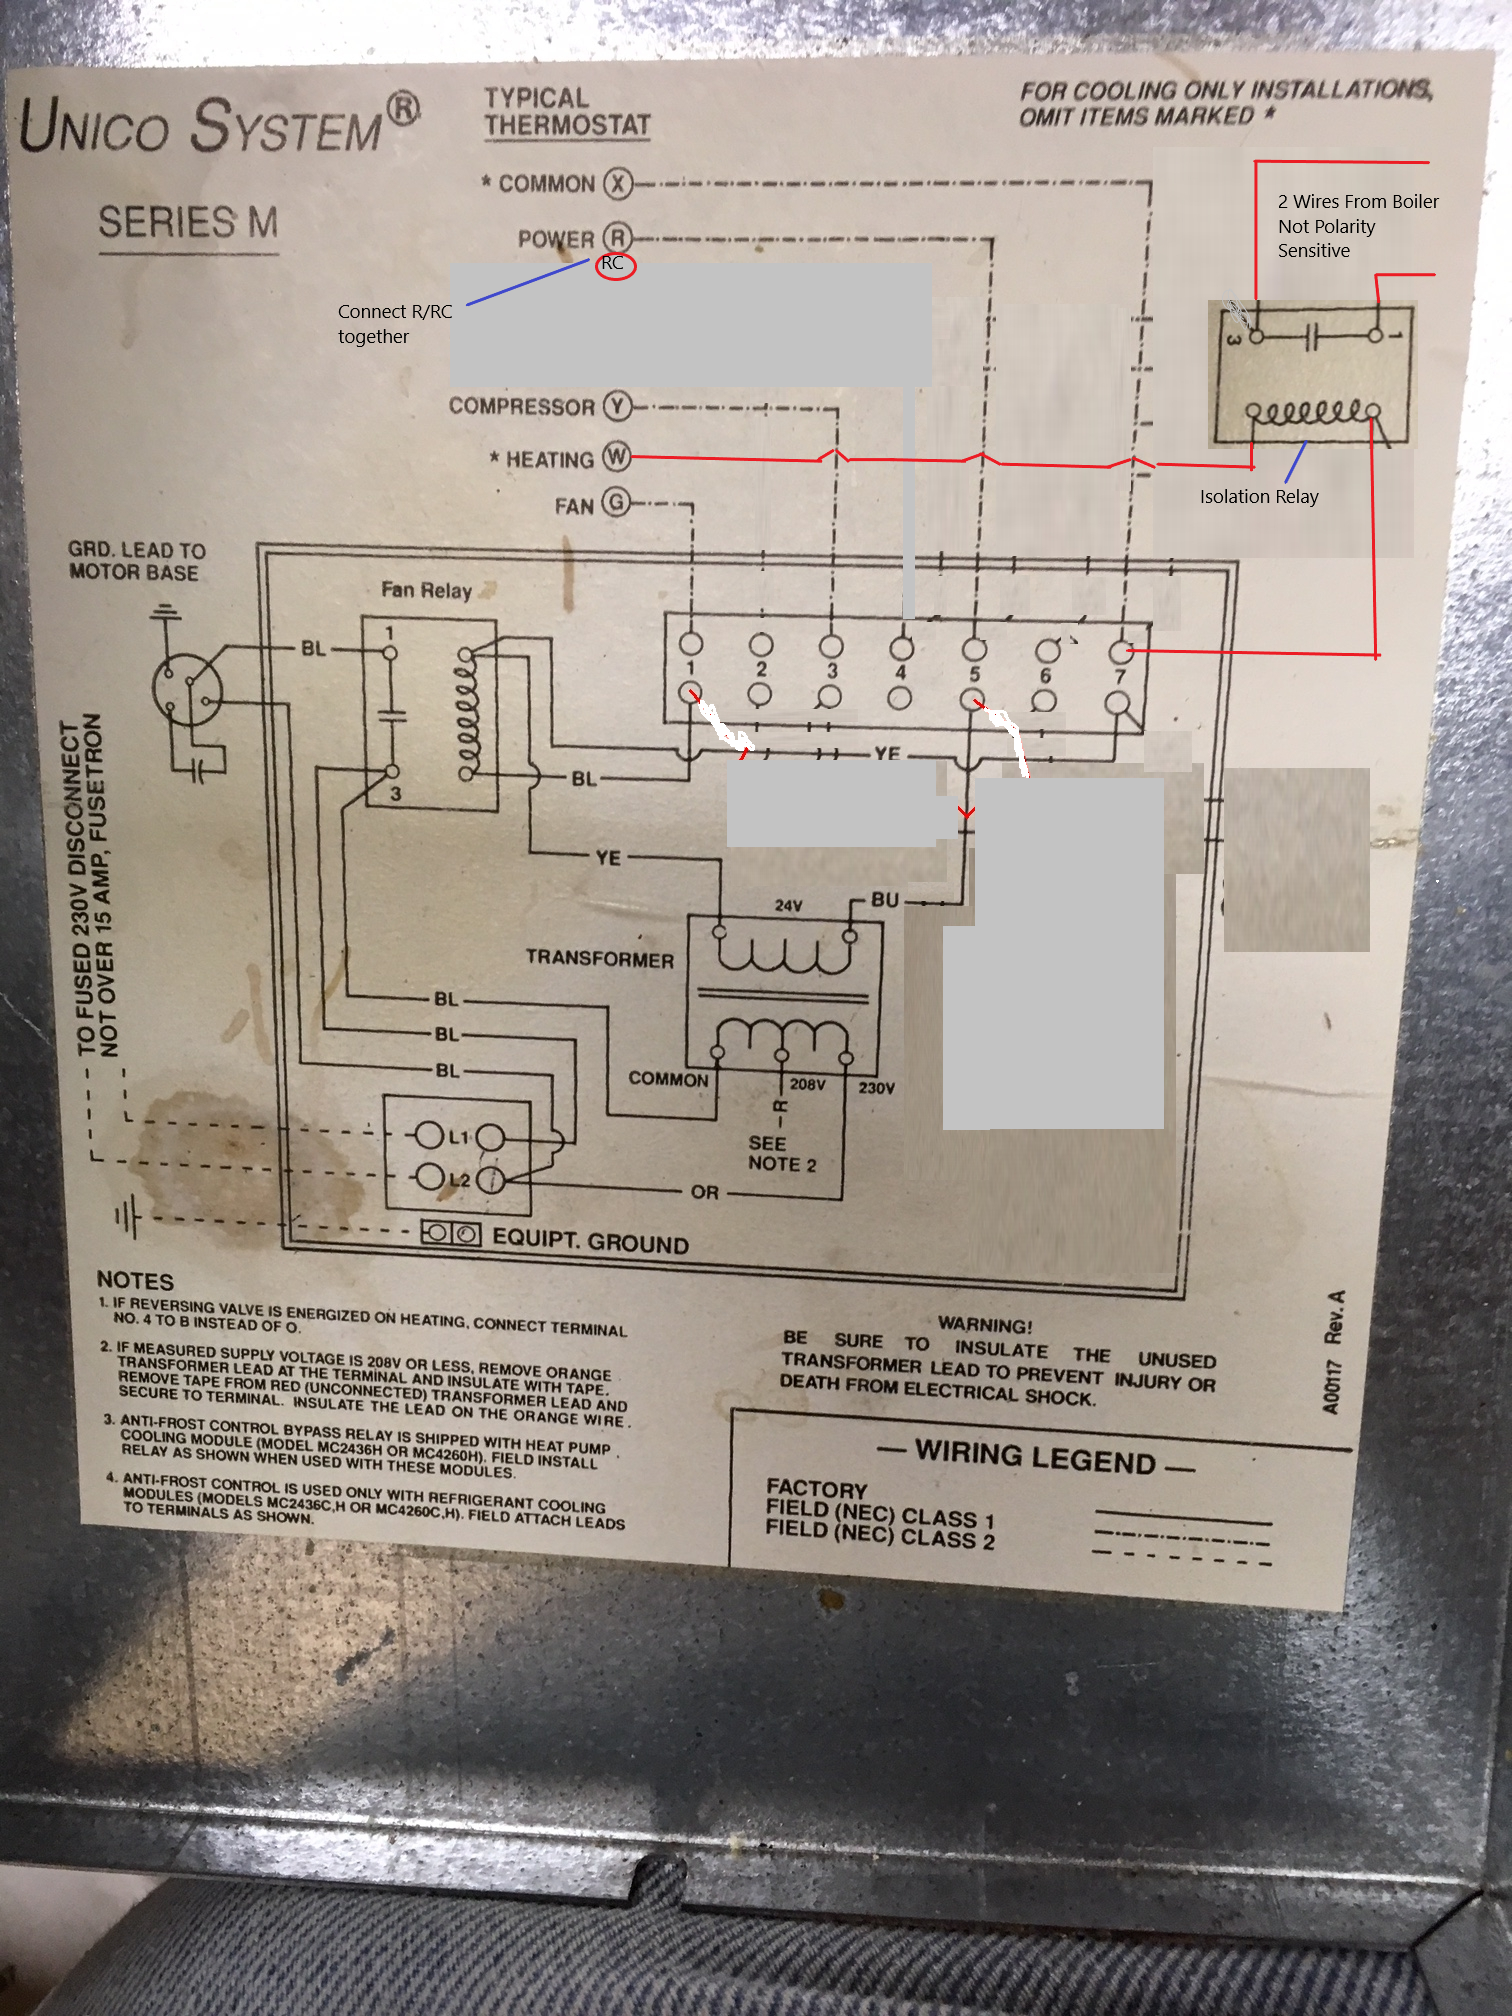 unico wiring diagram wiring diagram completed to 30 wiring diagram unico wiring diagram wiring diagram electric motor wiring diagram unico wiring diagram